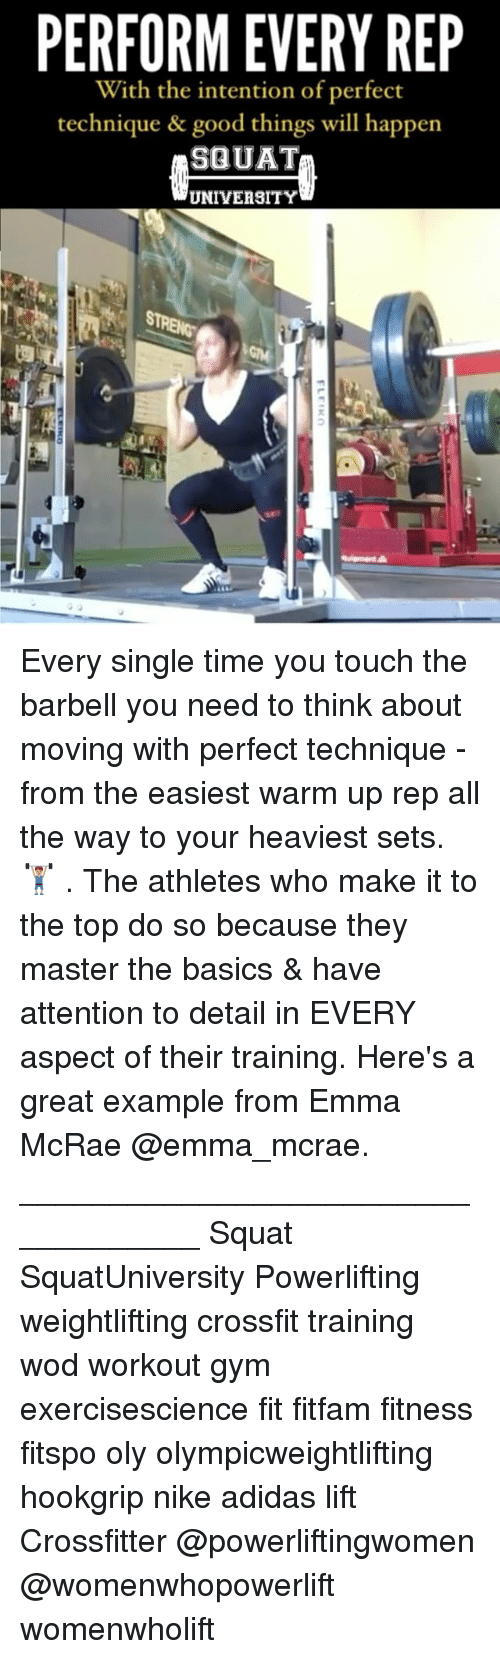 Adidas, Gym, and Memes: PERFORM EVERY REP  With the intention of perfect  technique & good things will happen  SQUAT  UNIVERSITY Every single time you touch the barbell you need to think about moving with perfect technique - from the easiest warm up rep all the way to your heaviest sets. 🏋🏽 . The athletes who make it to the top do so because they master the basics & have attention to detail in EVERY aspect of their training. Here's a great example from Emma McRae @emma_mcrae. ___________________________________ Squat SquatUniversity Powerlifting weightlifting crossfit training wod workout gym exercisescience fit fitfam fitness fitspo oly olympicweightlifting hookgrip nike adidas lift Crossfitter @powerliftingwomen @womenwhopowerlift womenwholift